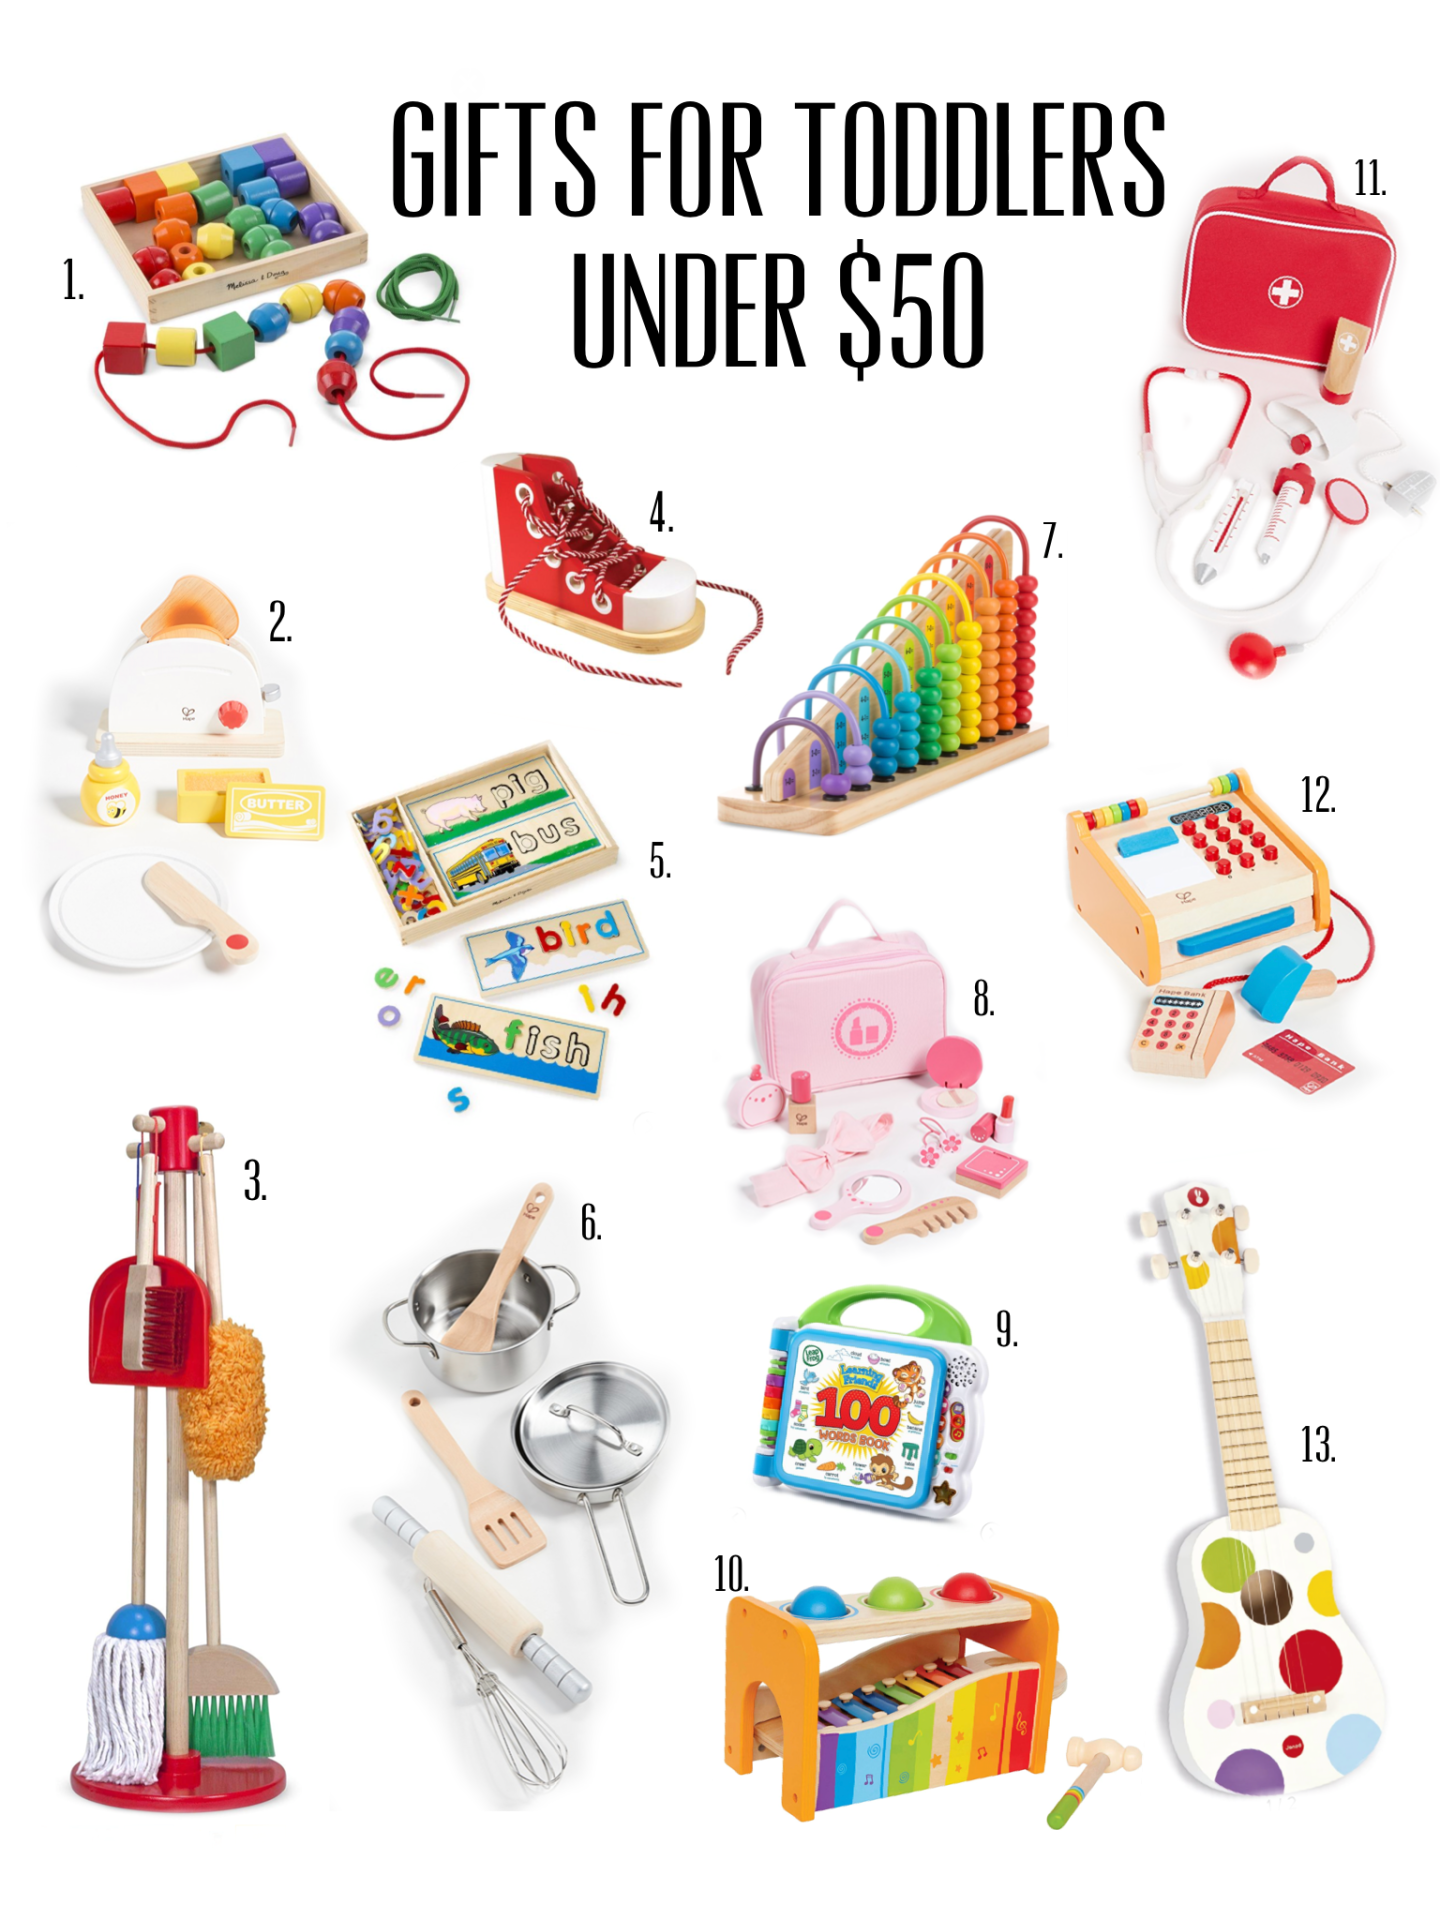 Gifts for toddlers under $50